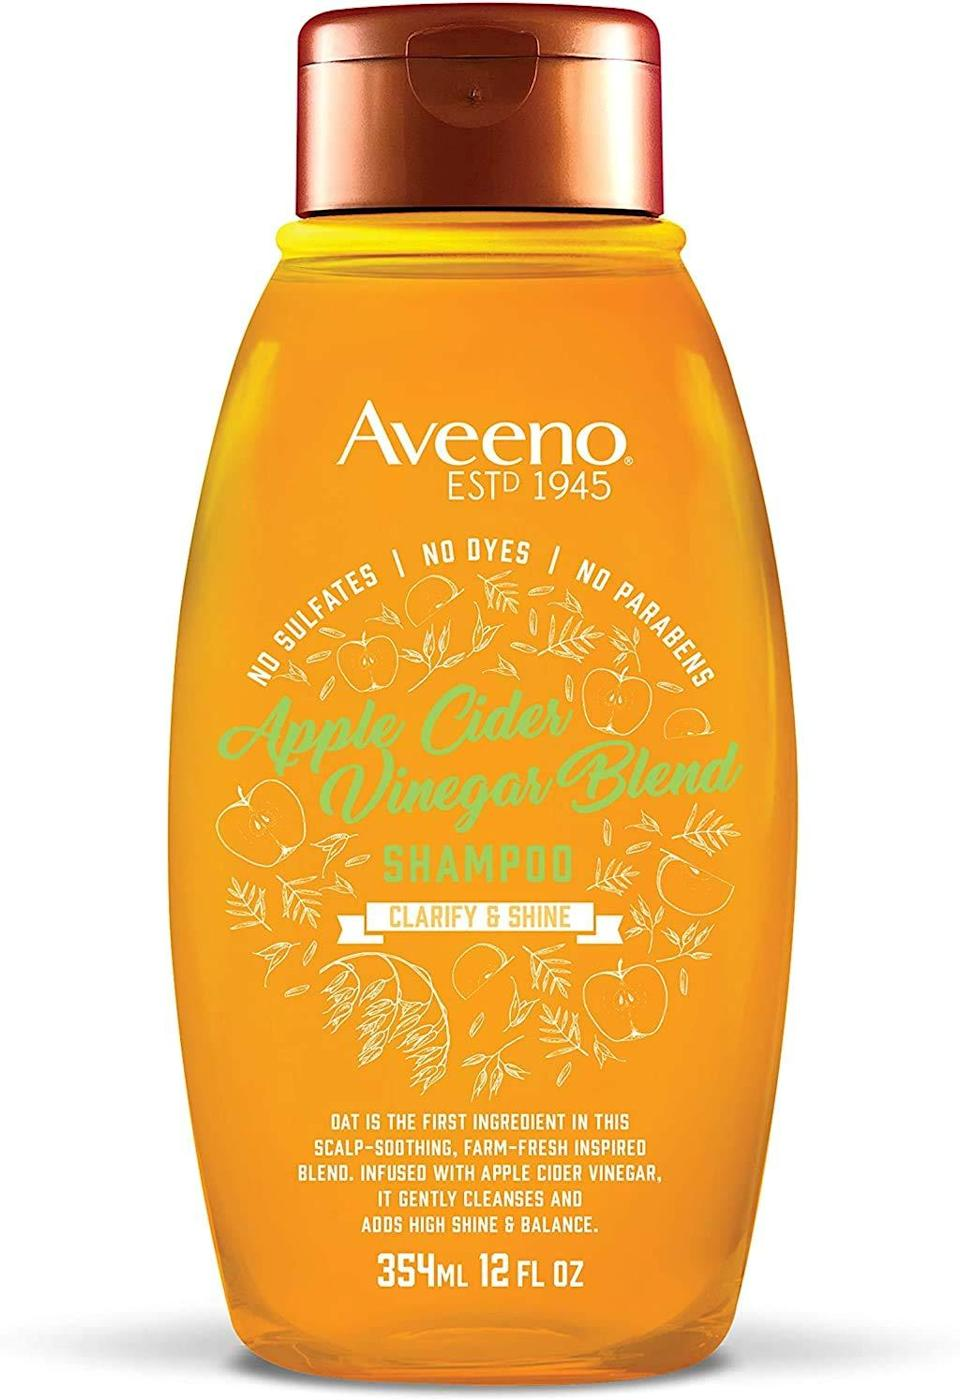 Aveeno Scalp Soothing Shampoo Apple Cider Vinegar Blend, Best Detox Shampoos